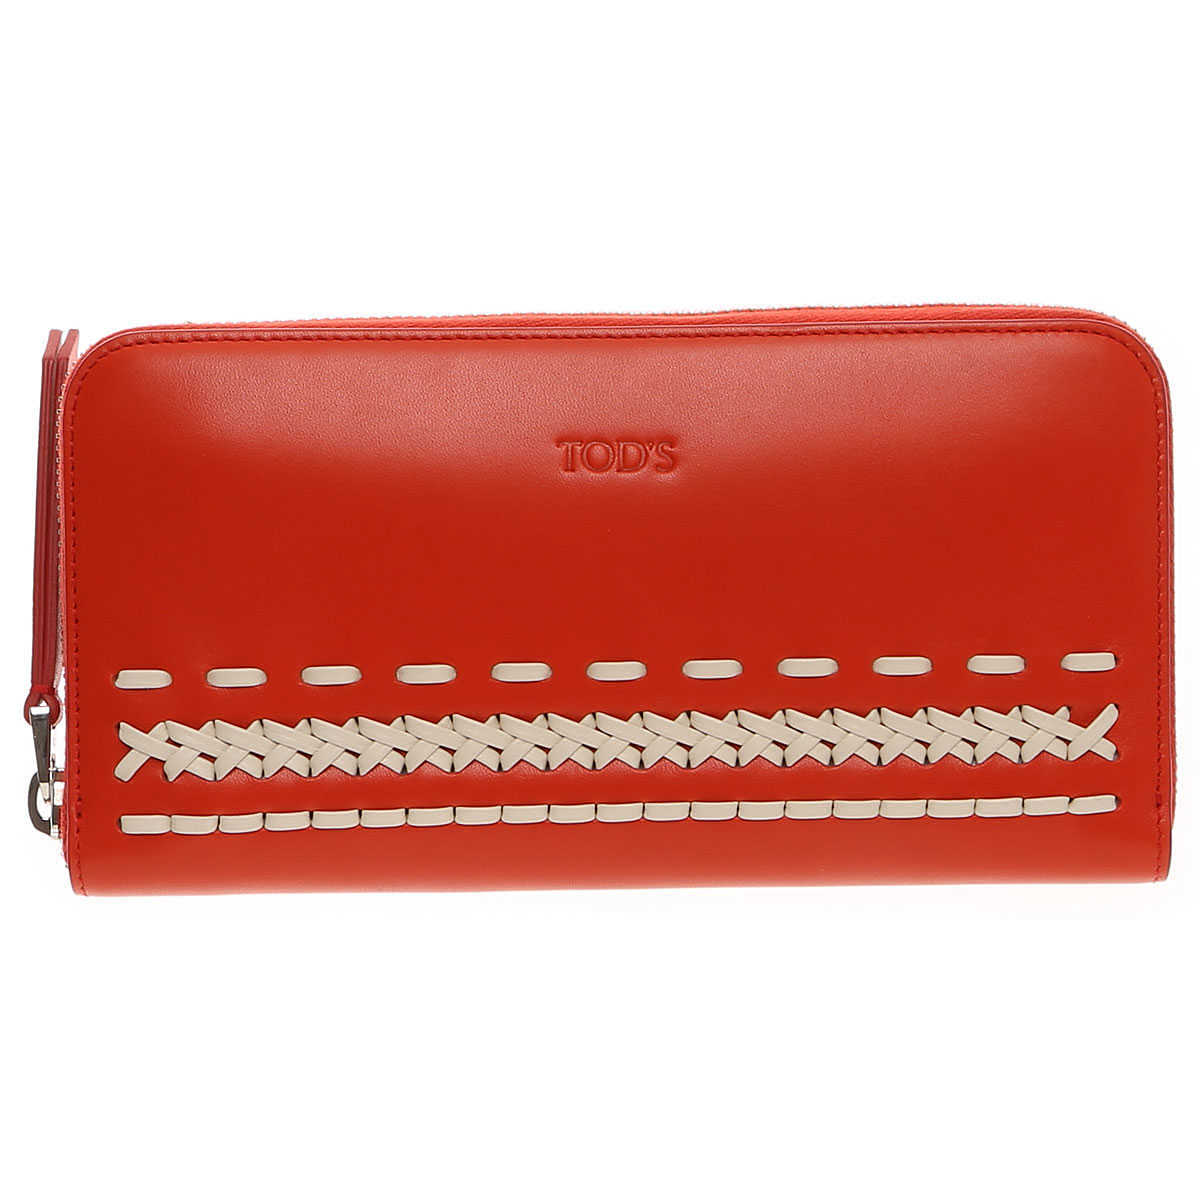 Tods Wallet for Women On Sale Red DK - GOOFASH - Womens WALLETS